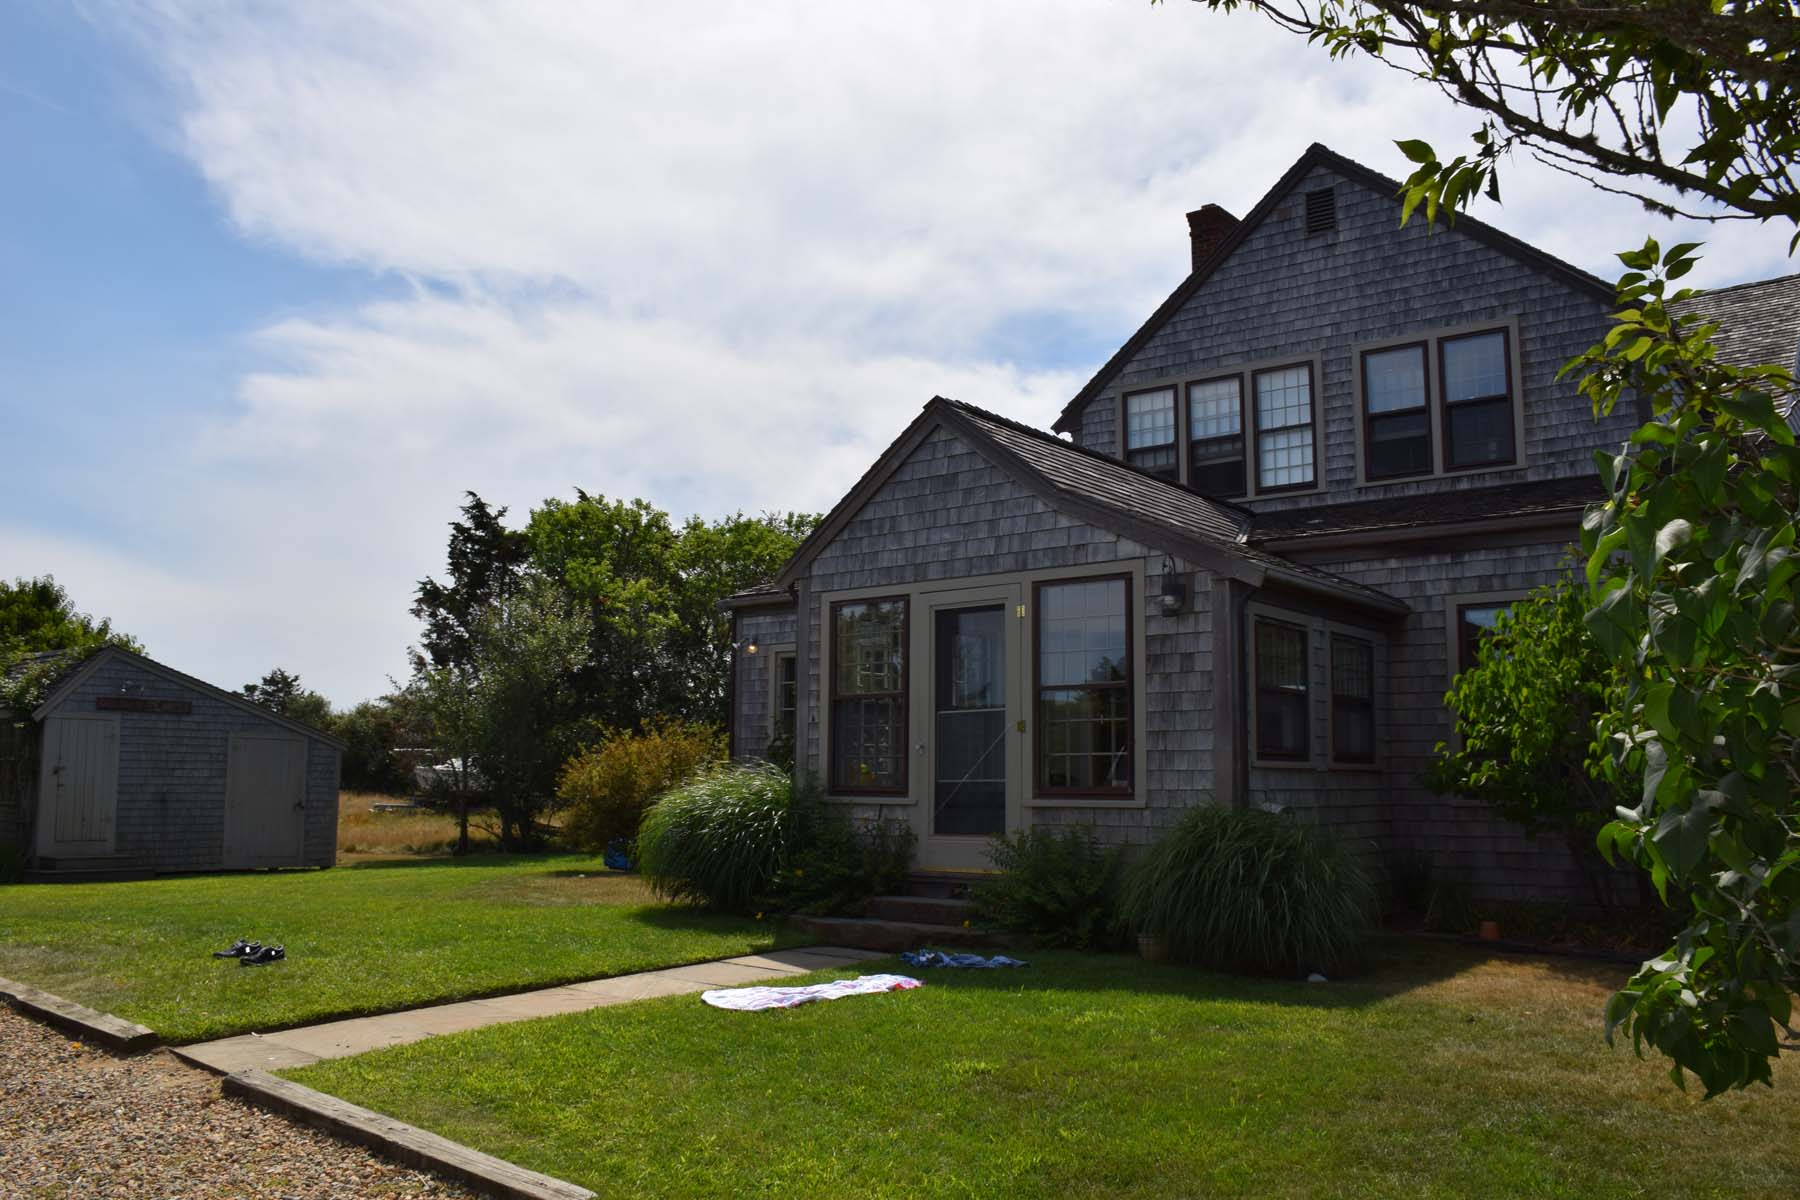 Single Family Home for Sale at Peace and Serenity! 15 Margarets Way Nantucket, Massachusetts, 02554 United States